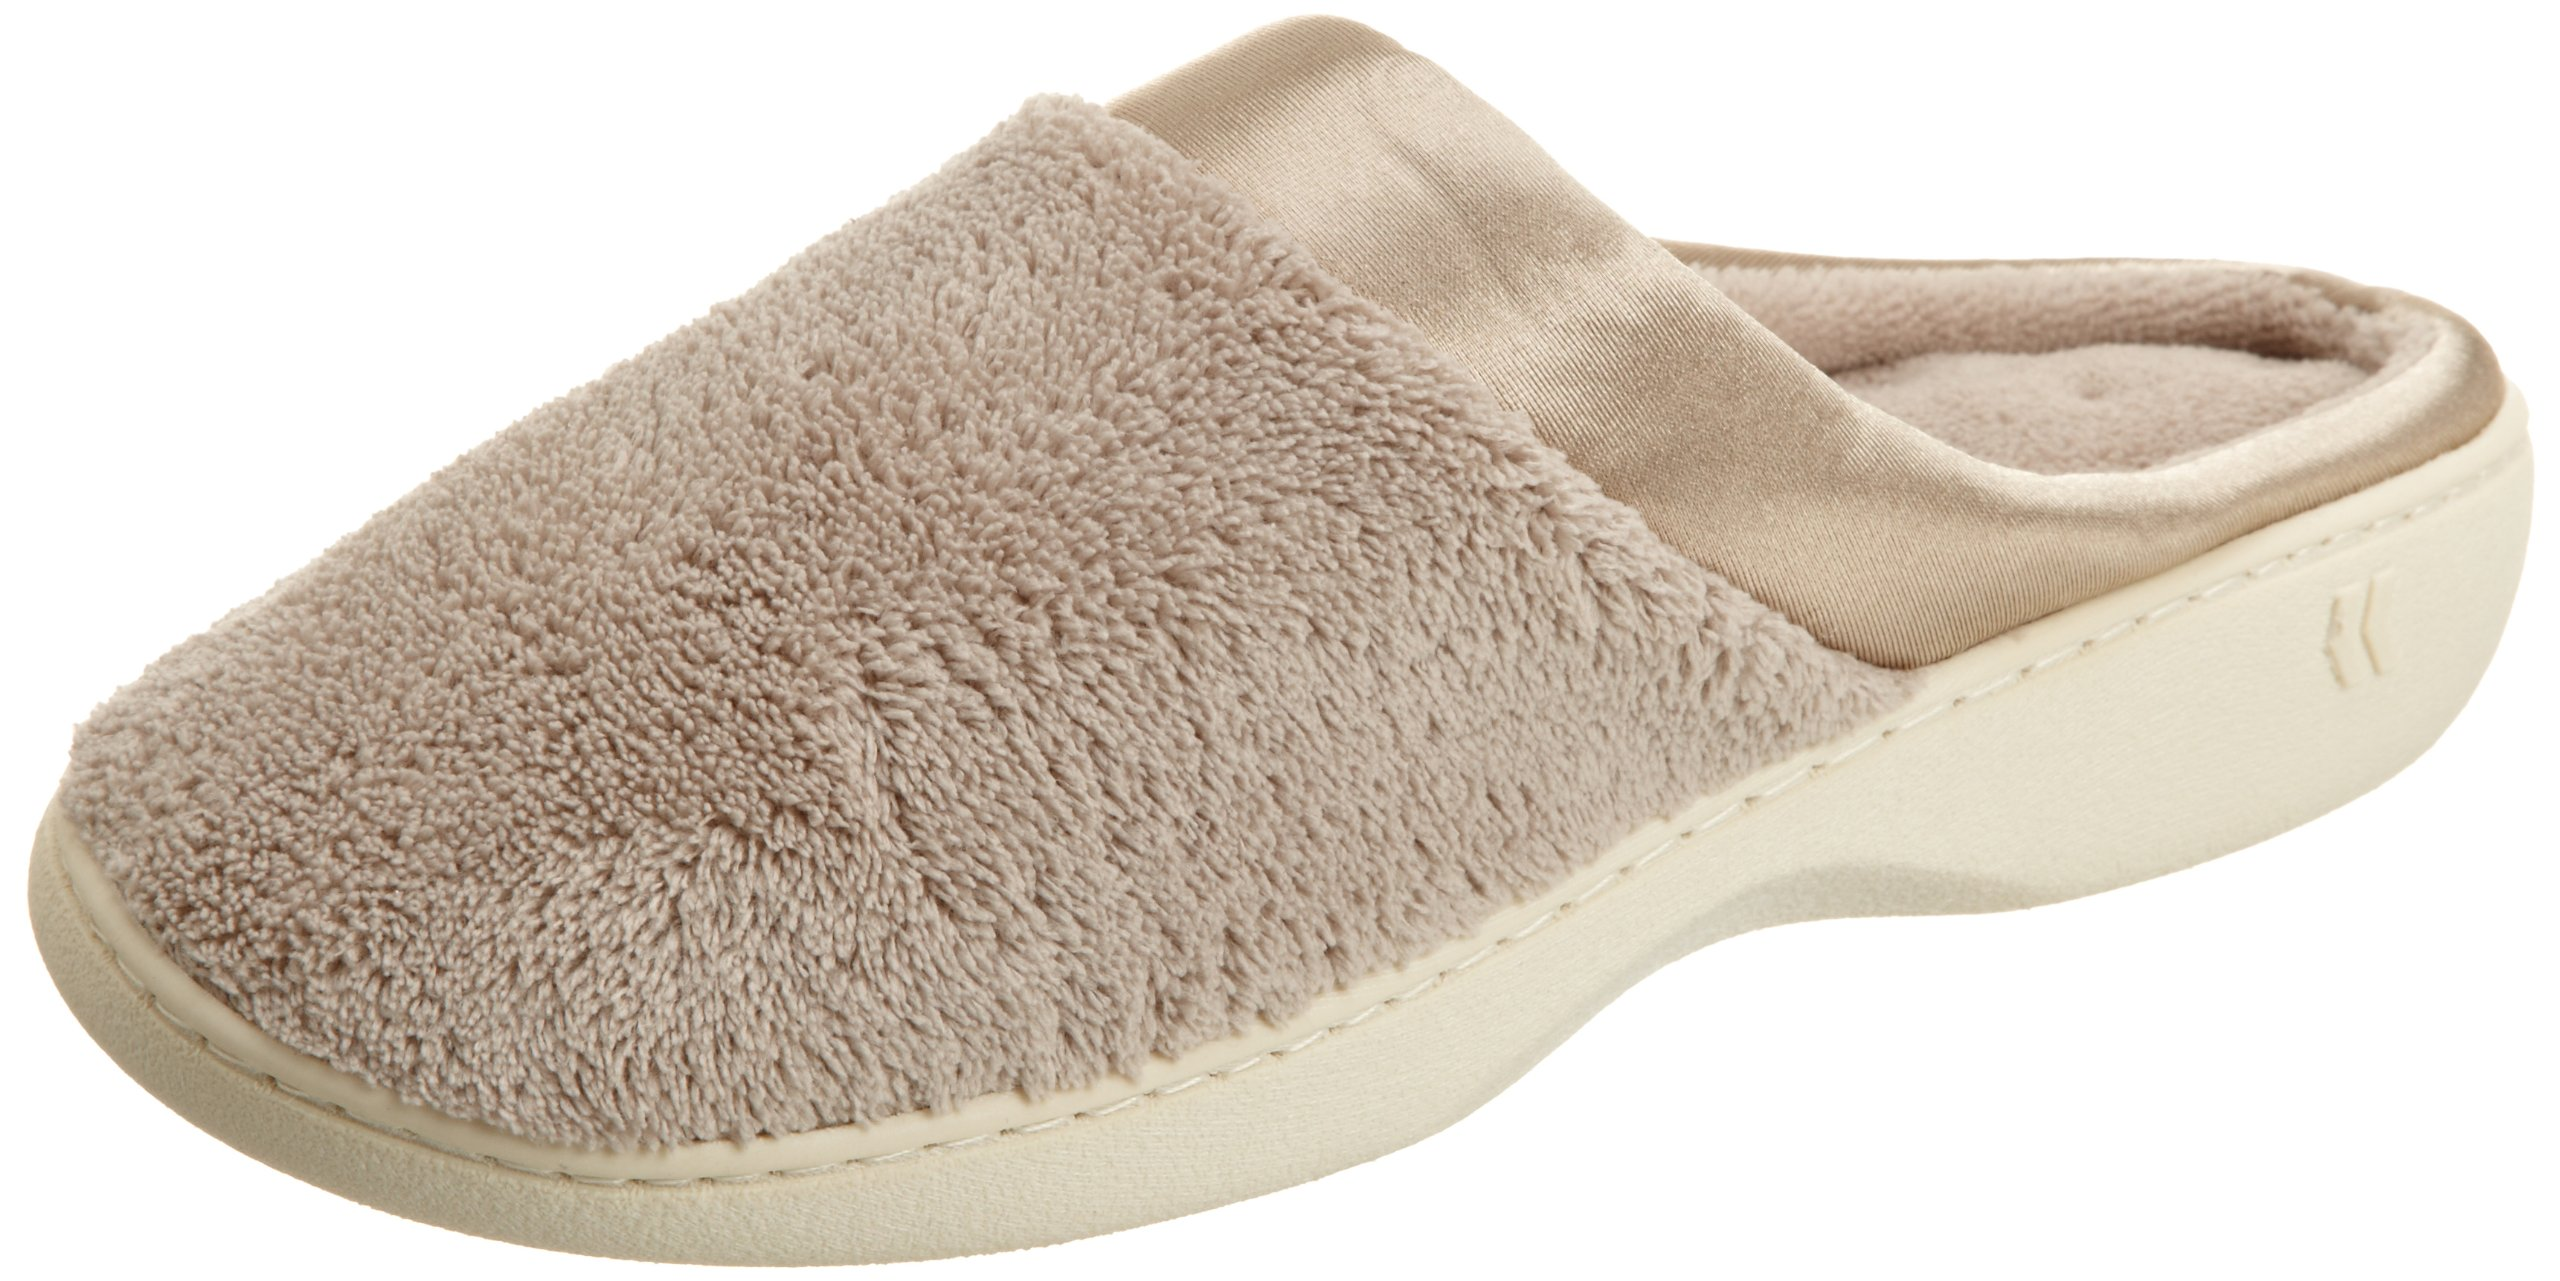 Isotoner Women's Microterry PillowStep Satin Cuff Clog Slippers, Taupe, 7.5-8 B(M) US